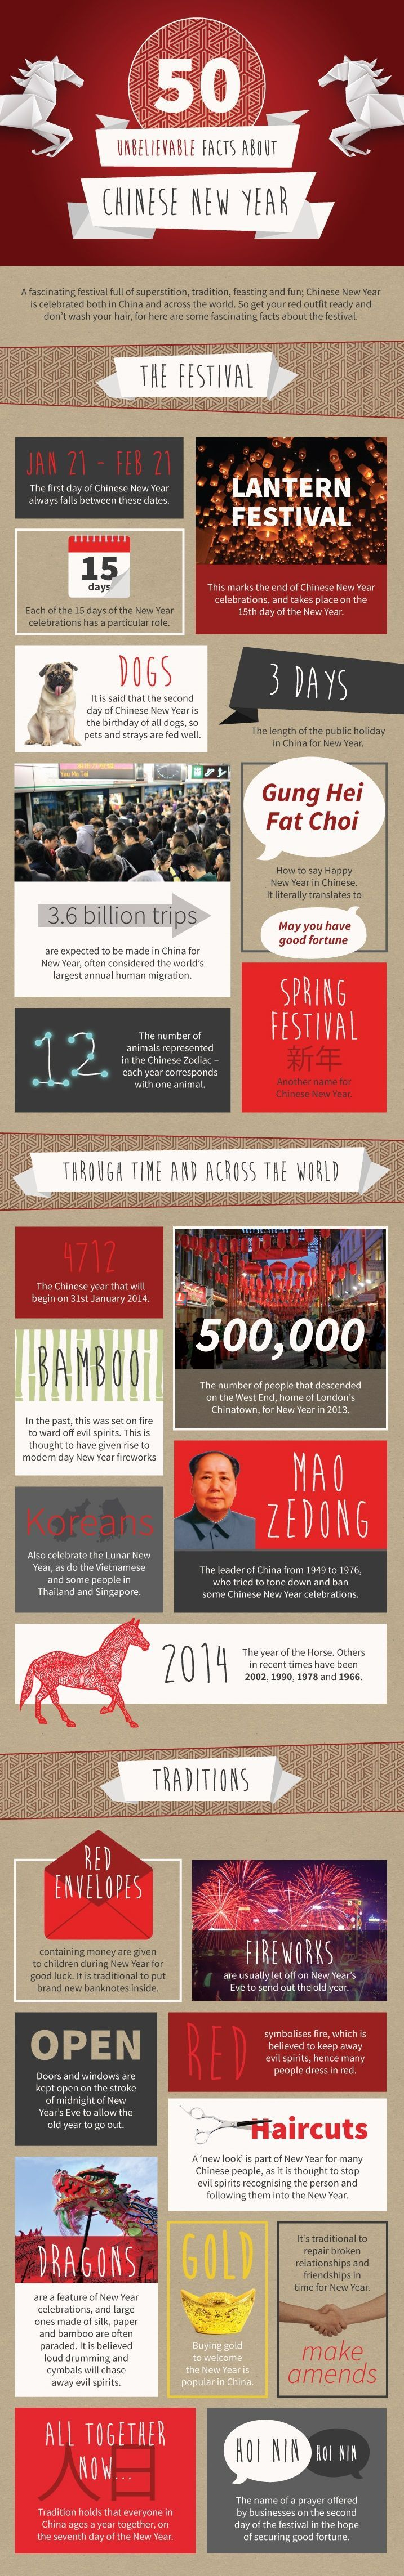 #CNY Chinese New Year #traditions & Fun Facts  [infographic] Note: This was originally made for the year of Horse but most of the information is for any CNY really.